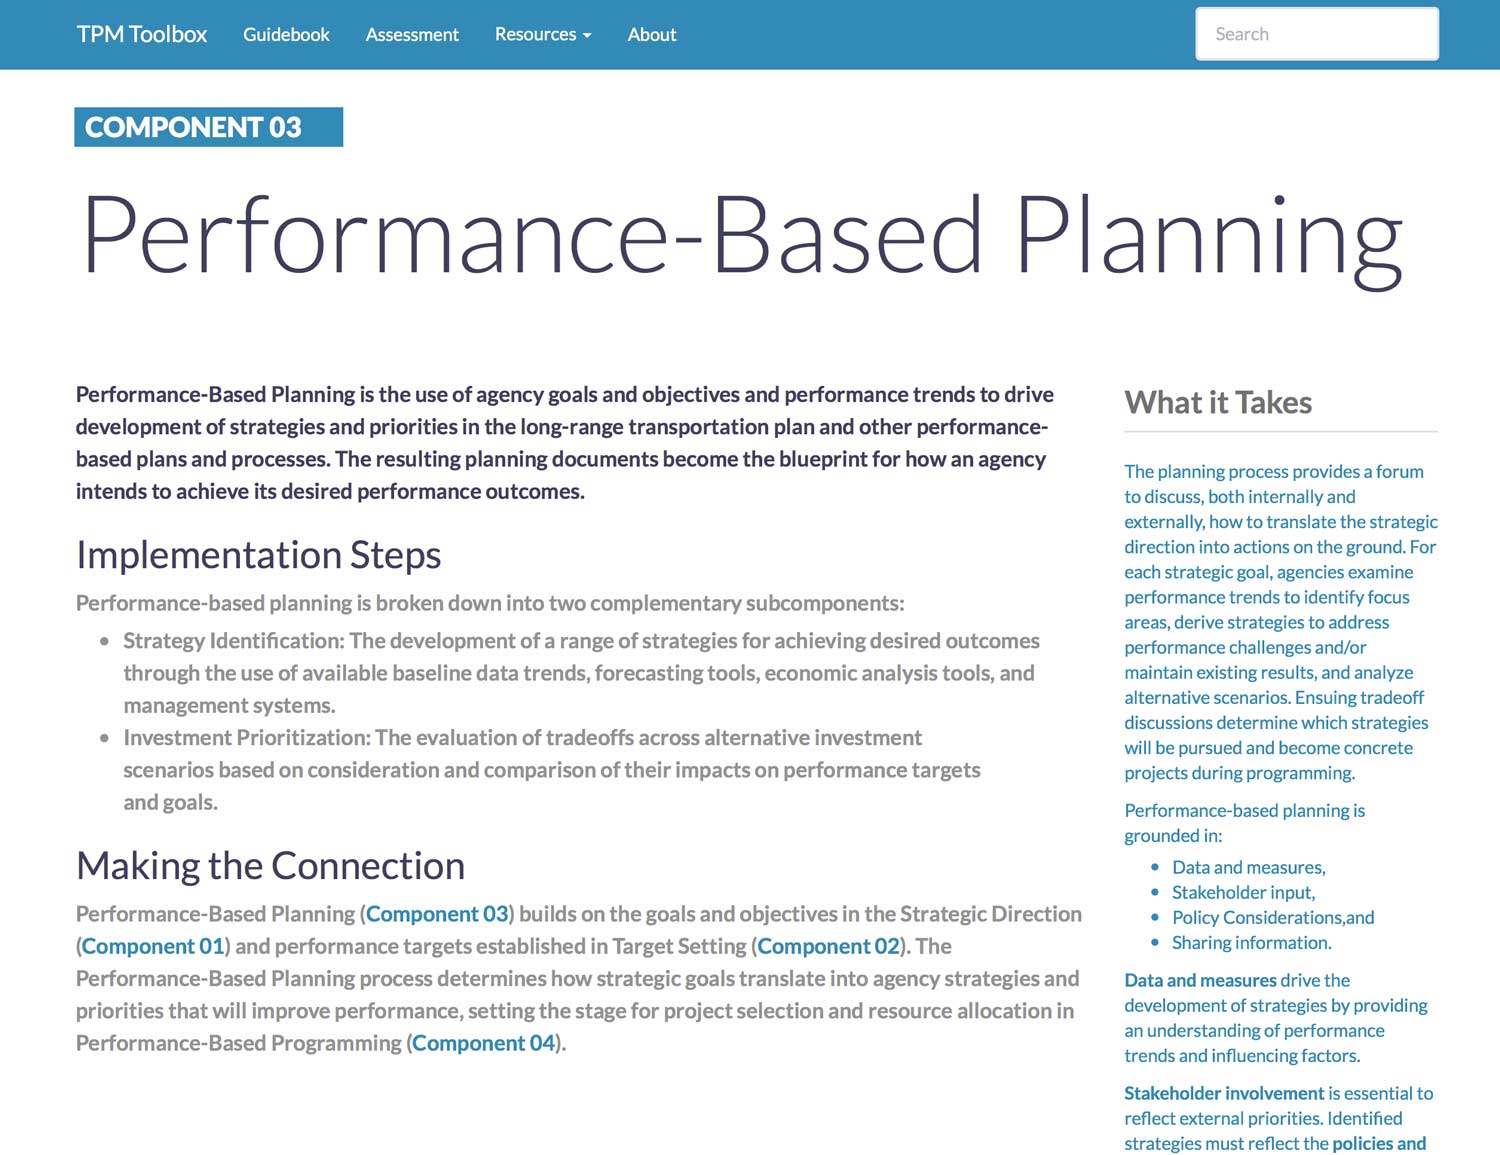 Thumbnail image of Component 03 Summary webpage. Performance-Based Planning is the use of agency goals and objectives and performance trends to drive development of strategies and priorities in the long-range transportation plan and other performance-based plans and processes.